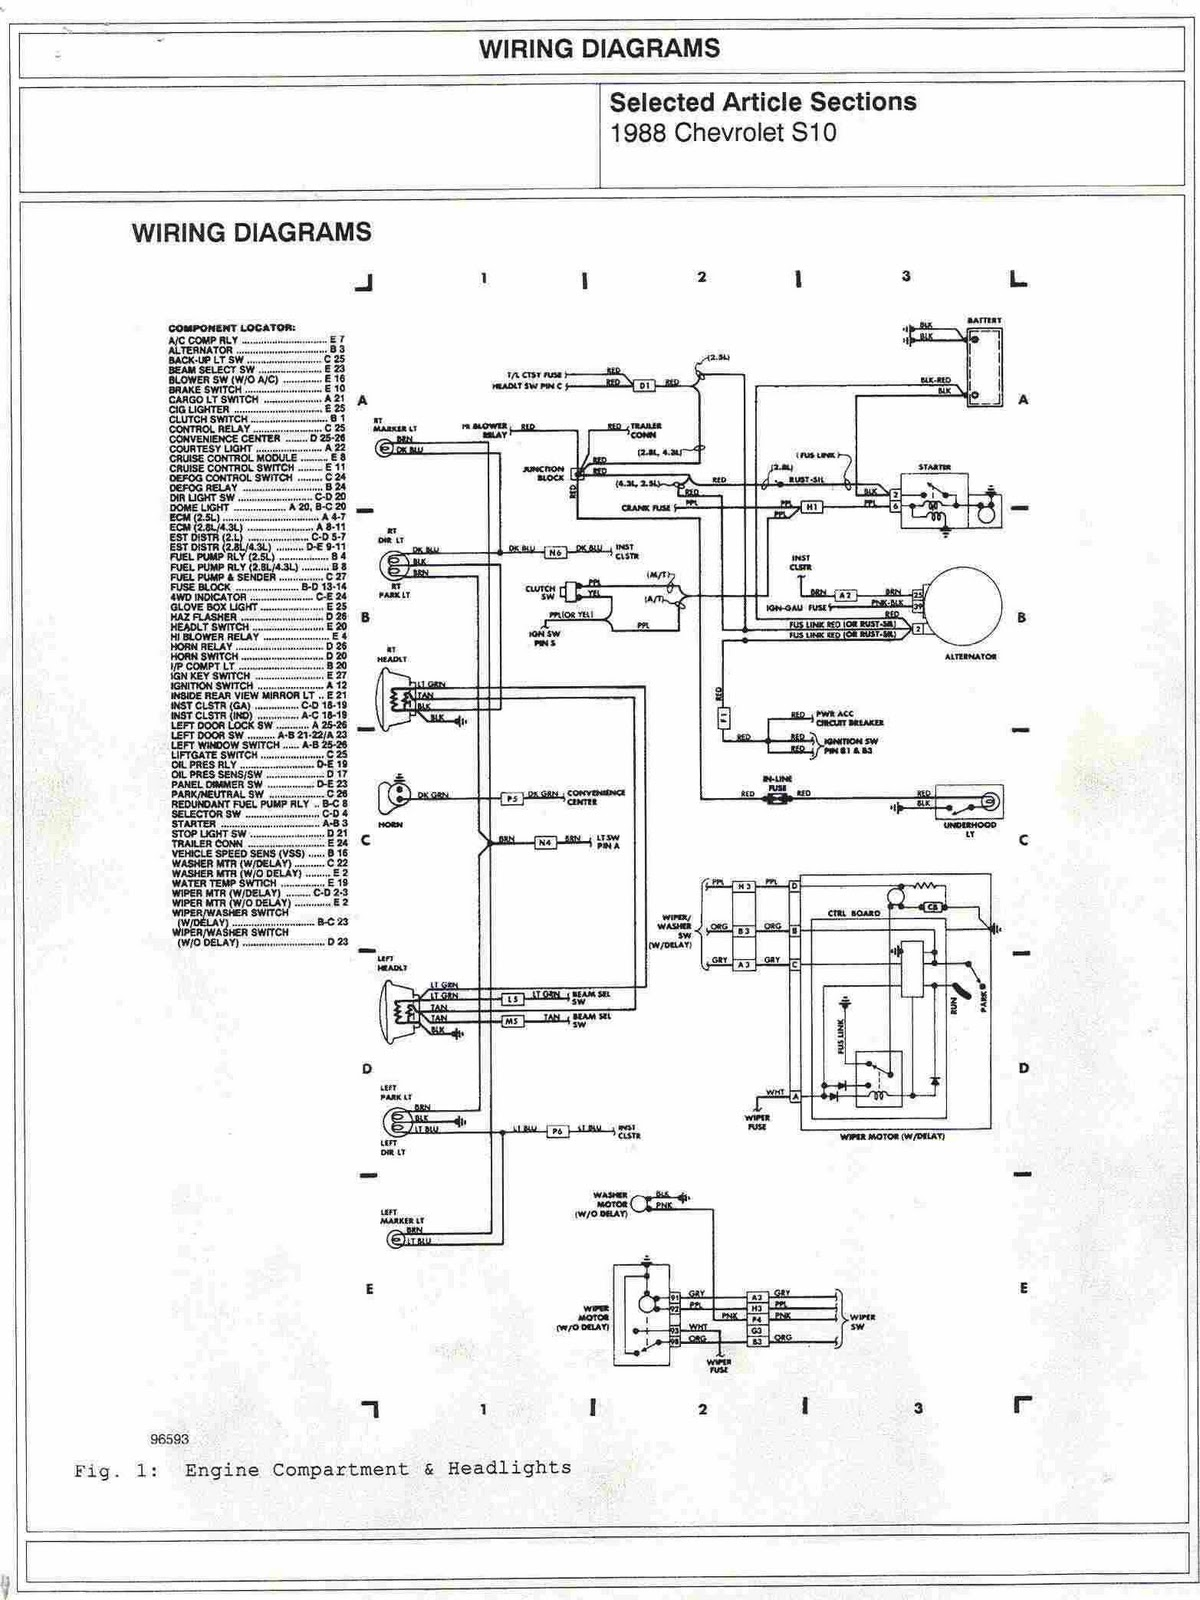 1988+Chevrolet+S10+Engine+Compartment+and+Headlights+Wiring+Diagrams 95 chevy s10 wiring diagram c2 06 readingrat net  at crackthecode.co